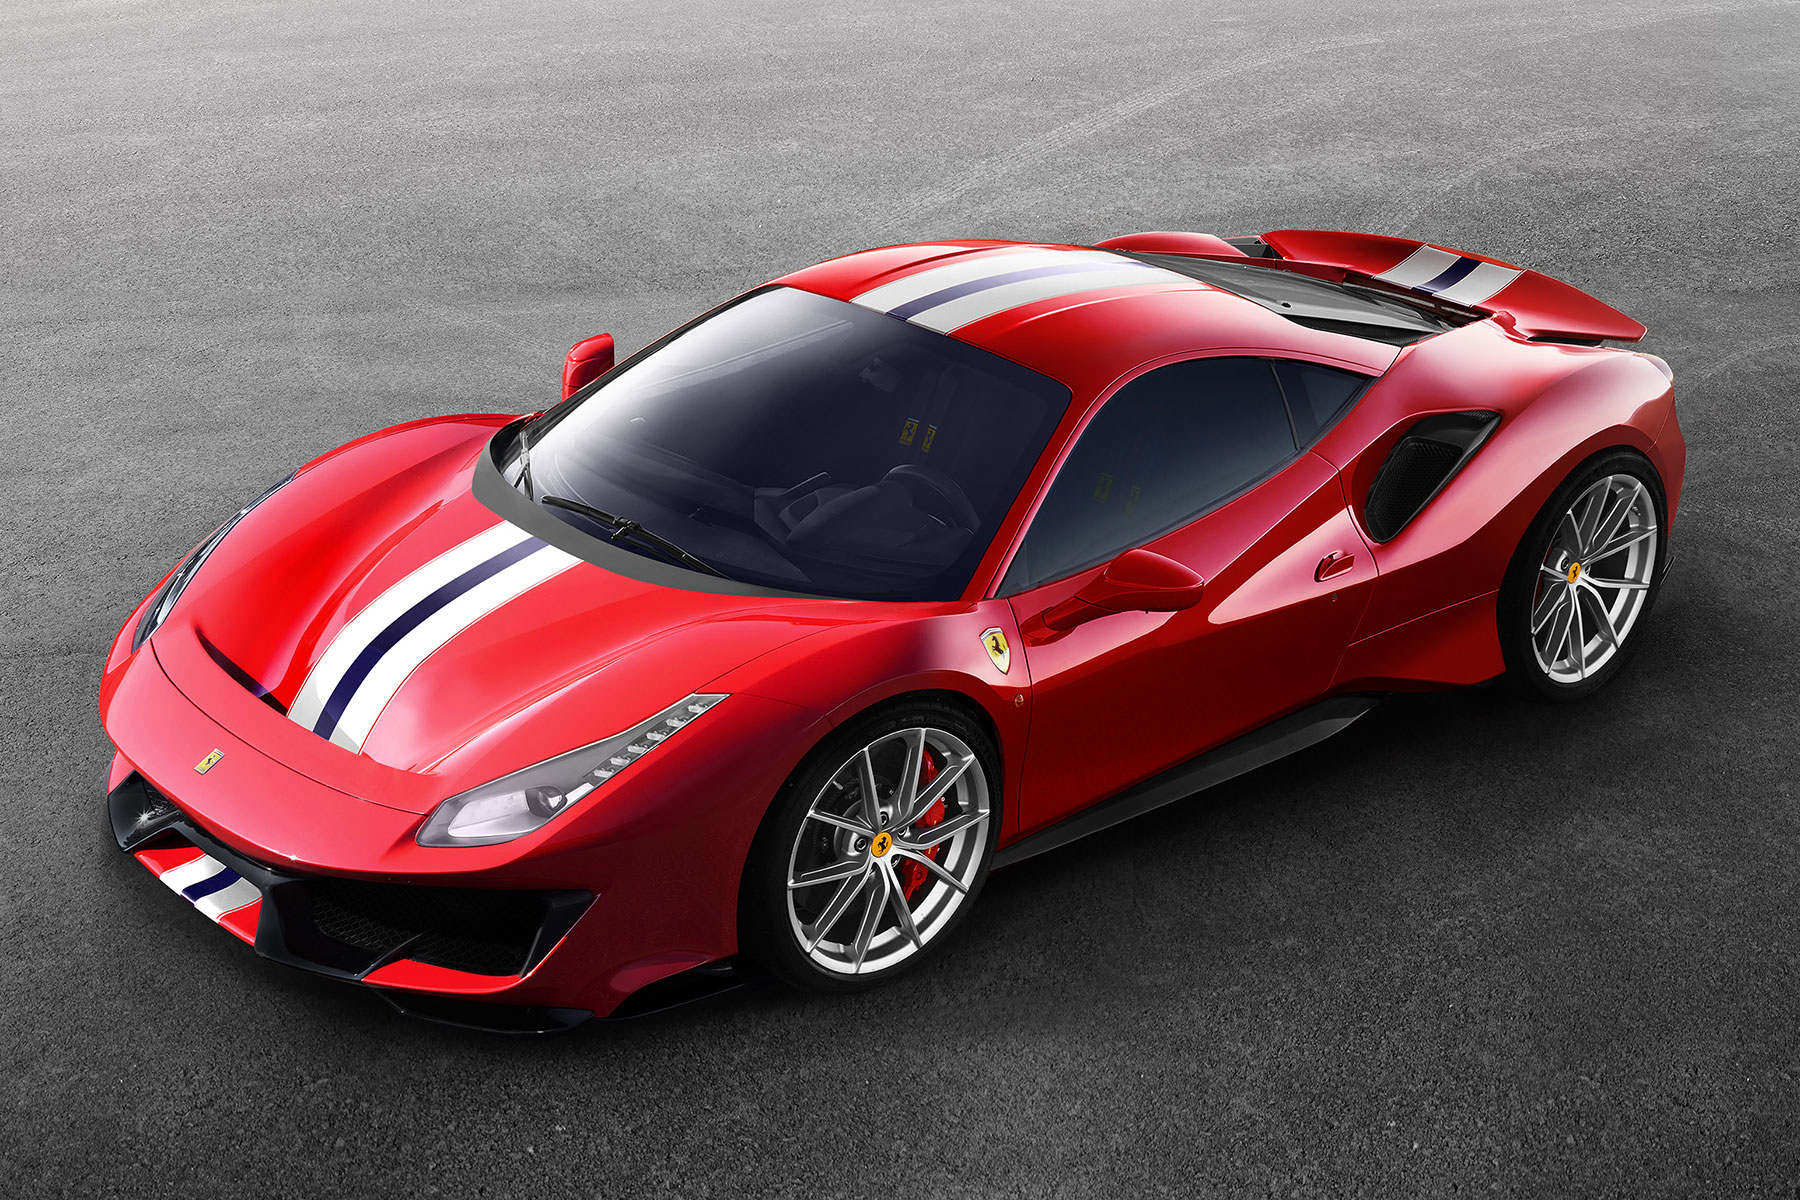 10 Geneva Motor Show stars we're really excited about